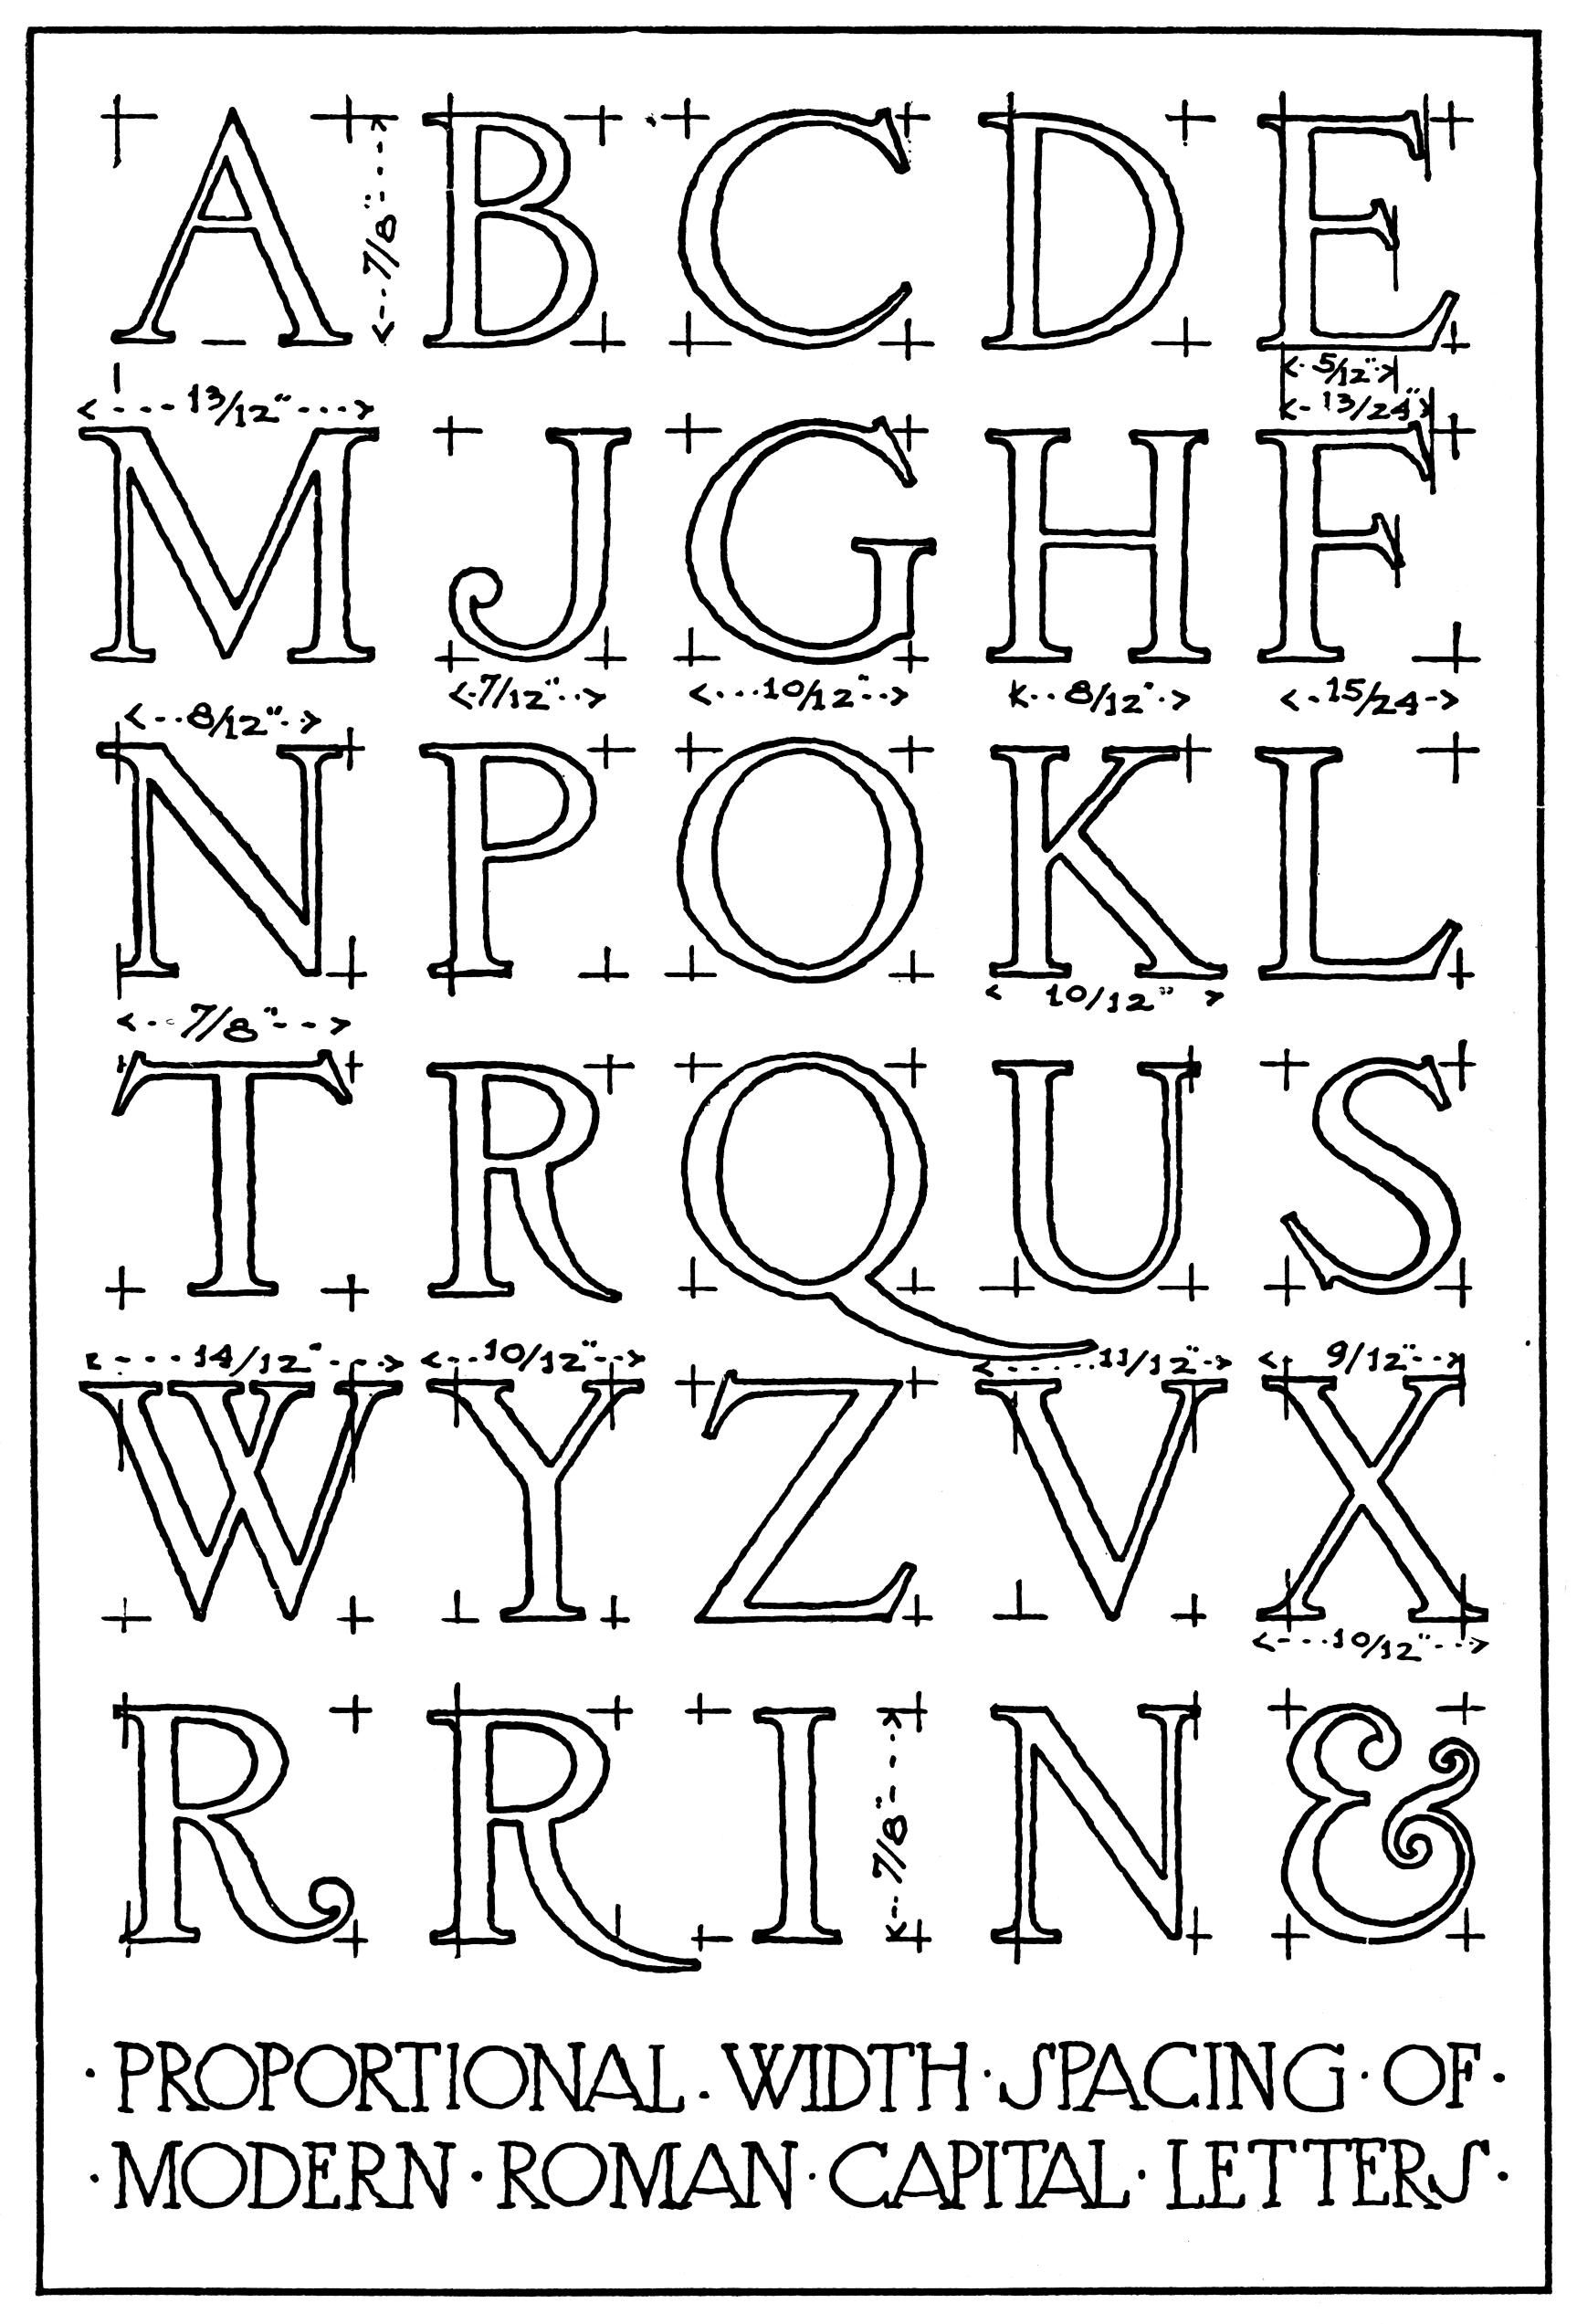 Proportional width spacing of modern roman capital letters frank chouteau brown